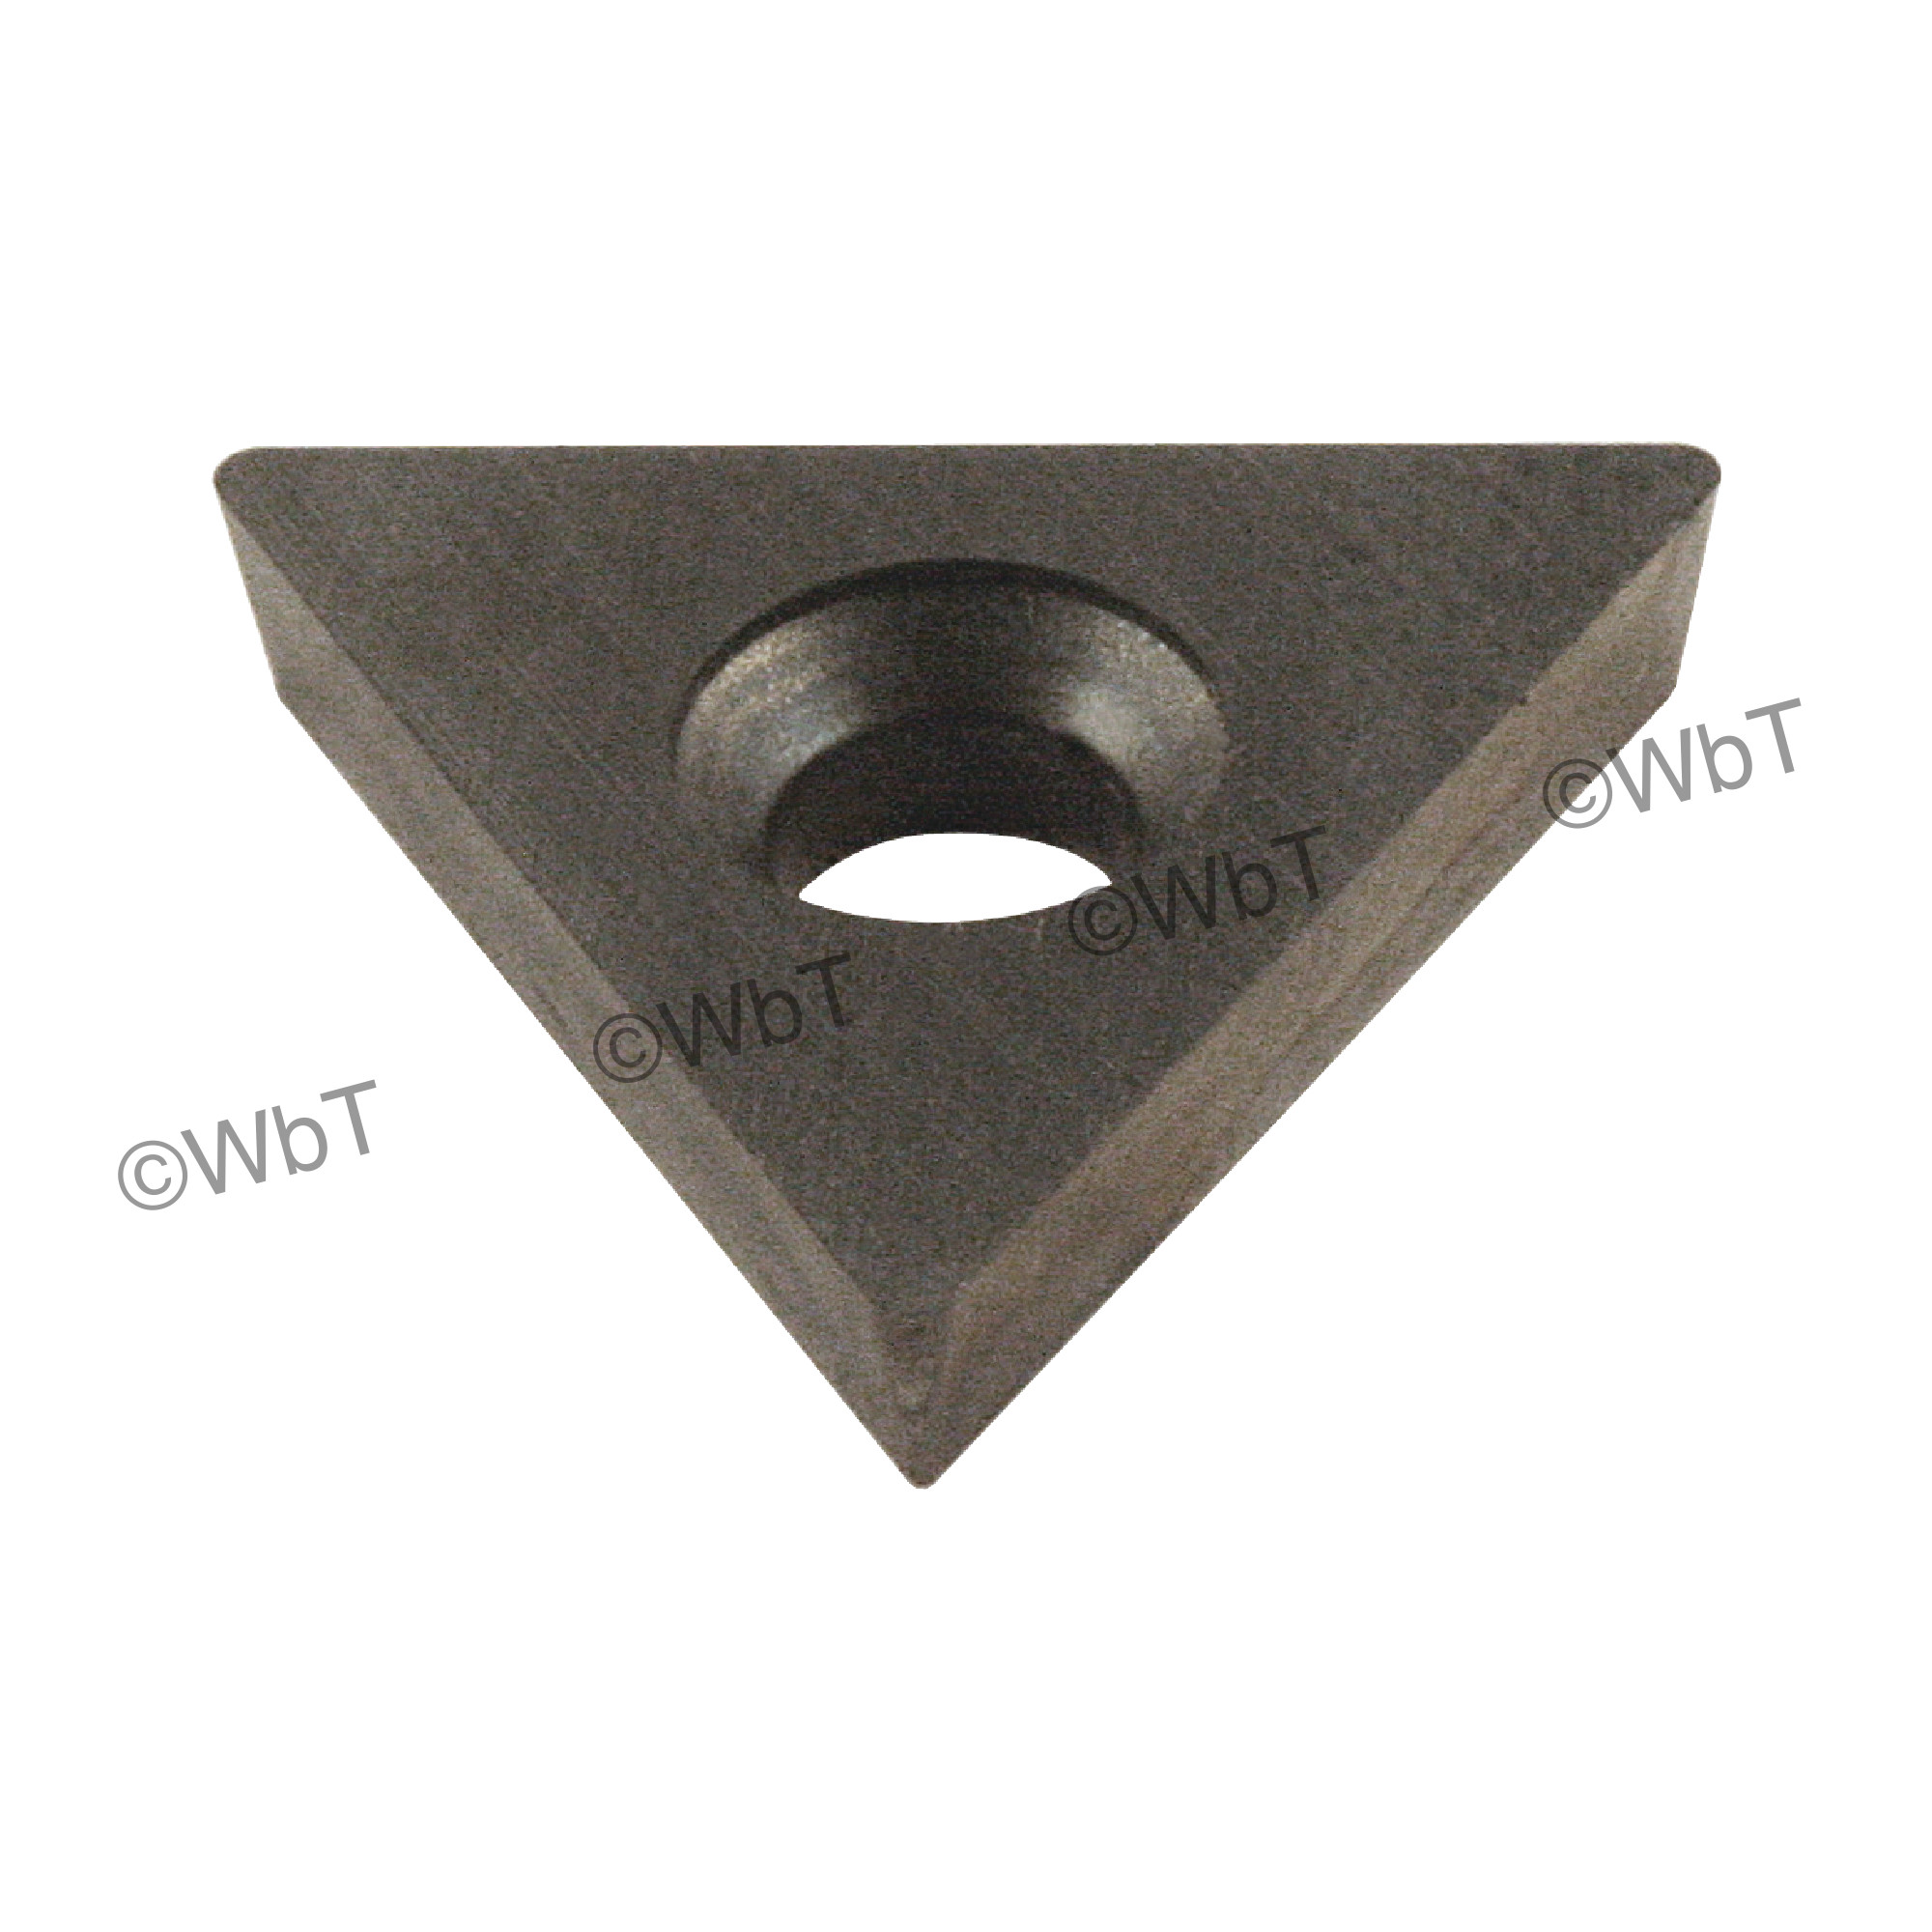 TTC PRODUCTION Spare part for Indexable Boring Bar - MODEL: 6-999-394